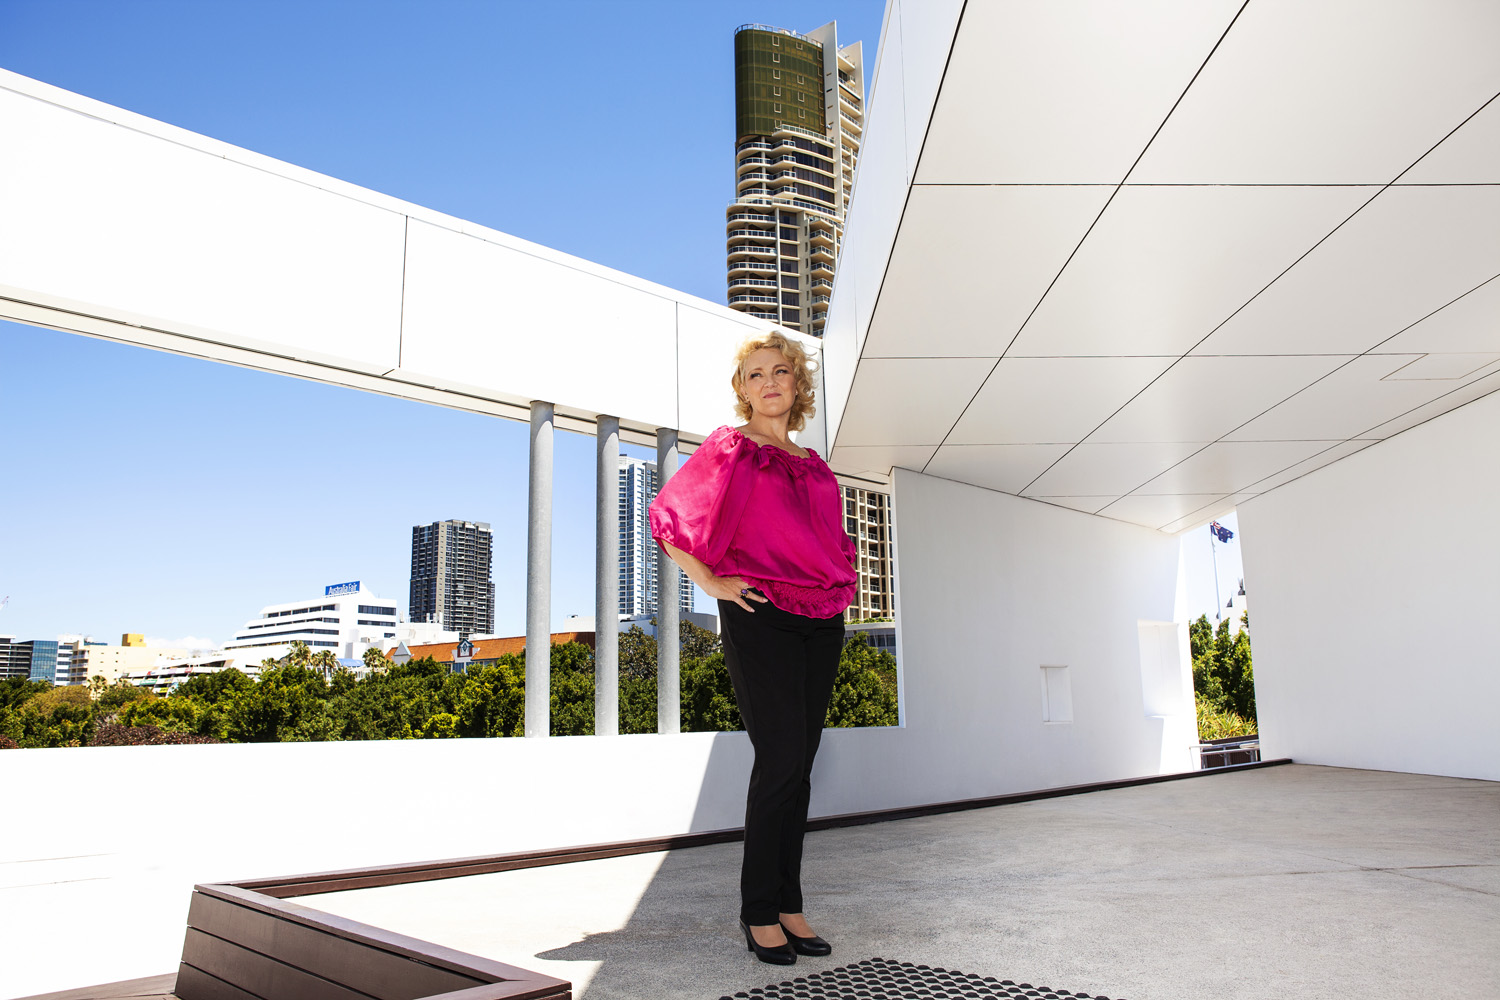 Susie Gallagher, Susie Southport, Gold Coast City Councillor, Division 6 Councillor, Southport Councillor, Gold Coast City Council, Susan Gallagher, @susiesouthport, @lananoir, business profile photography, Lana Noir, gold coast headshot photographer, gold coast celebrity photographer, own 2 feet